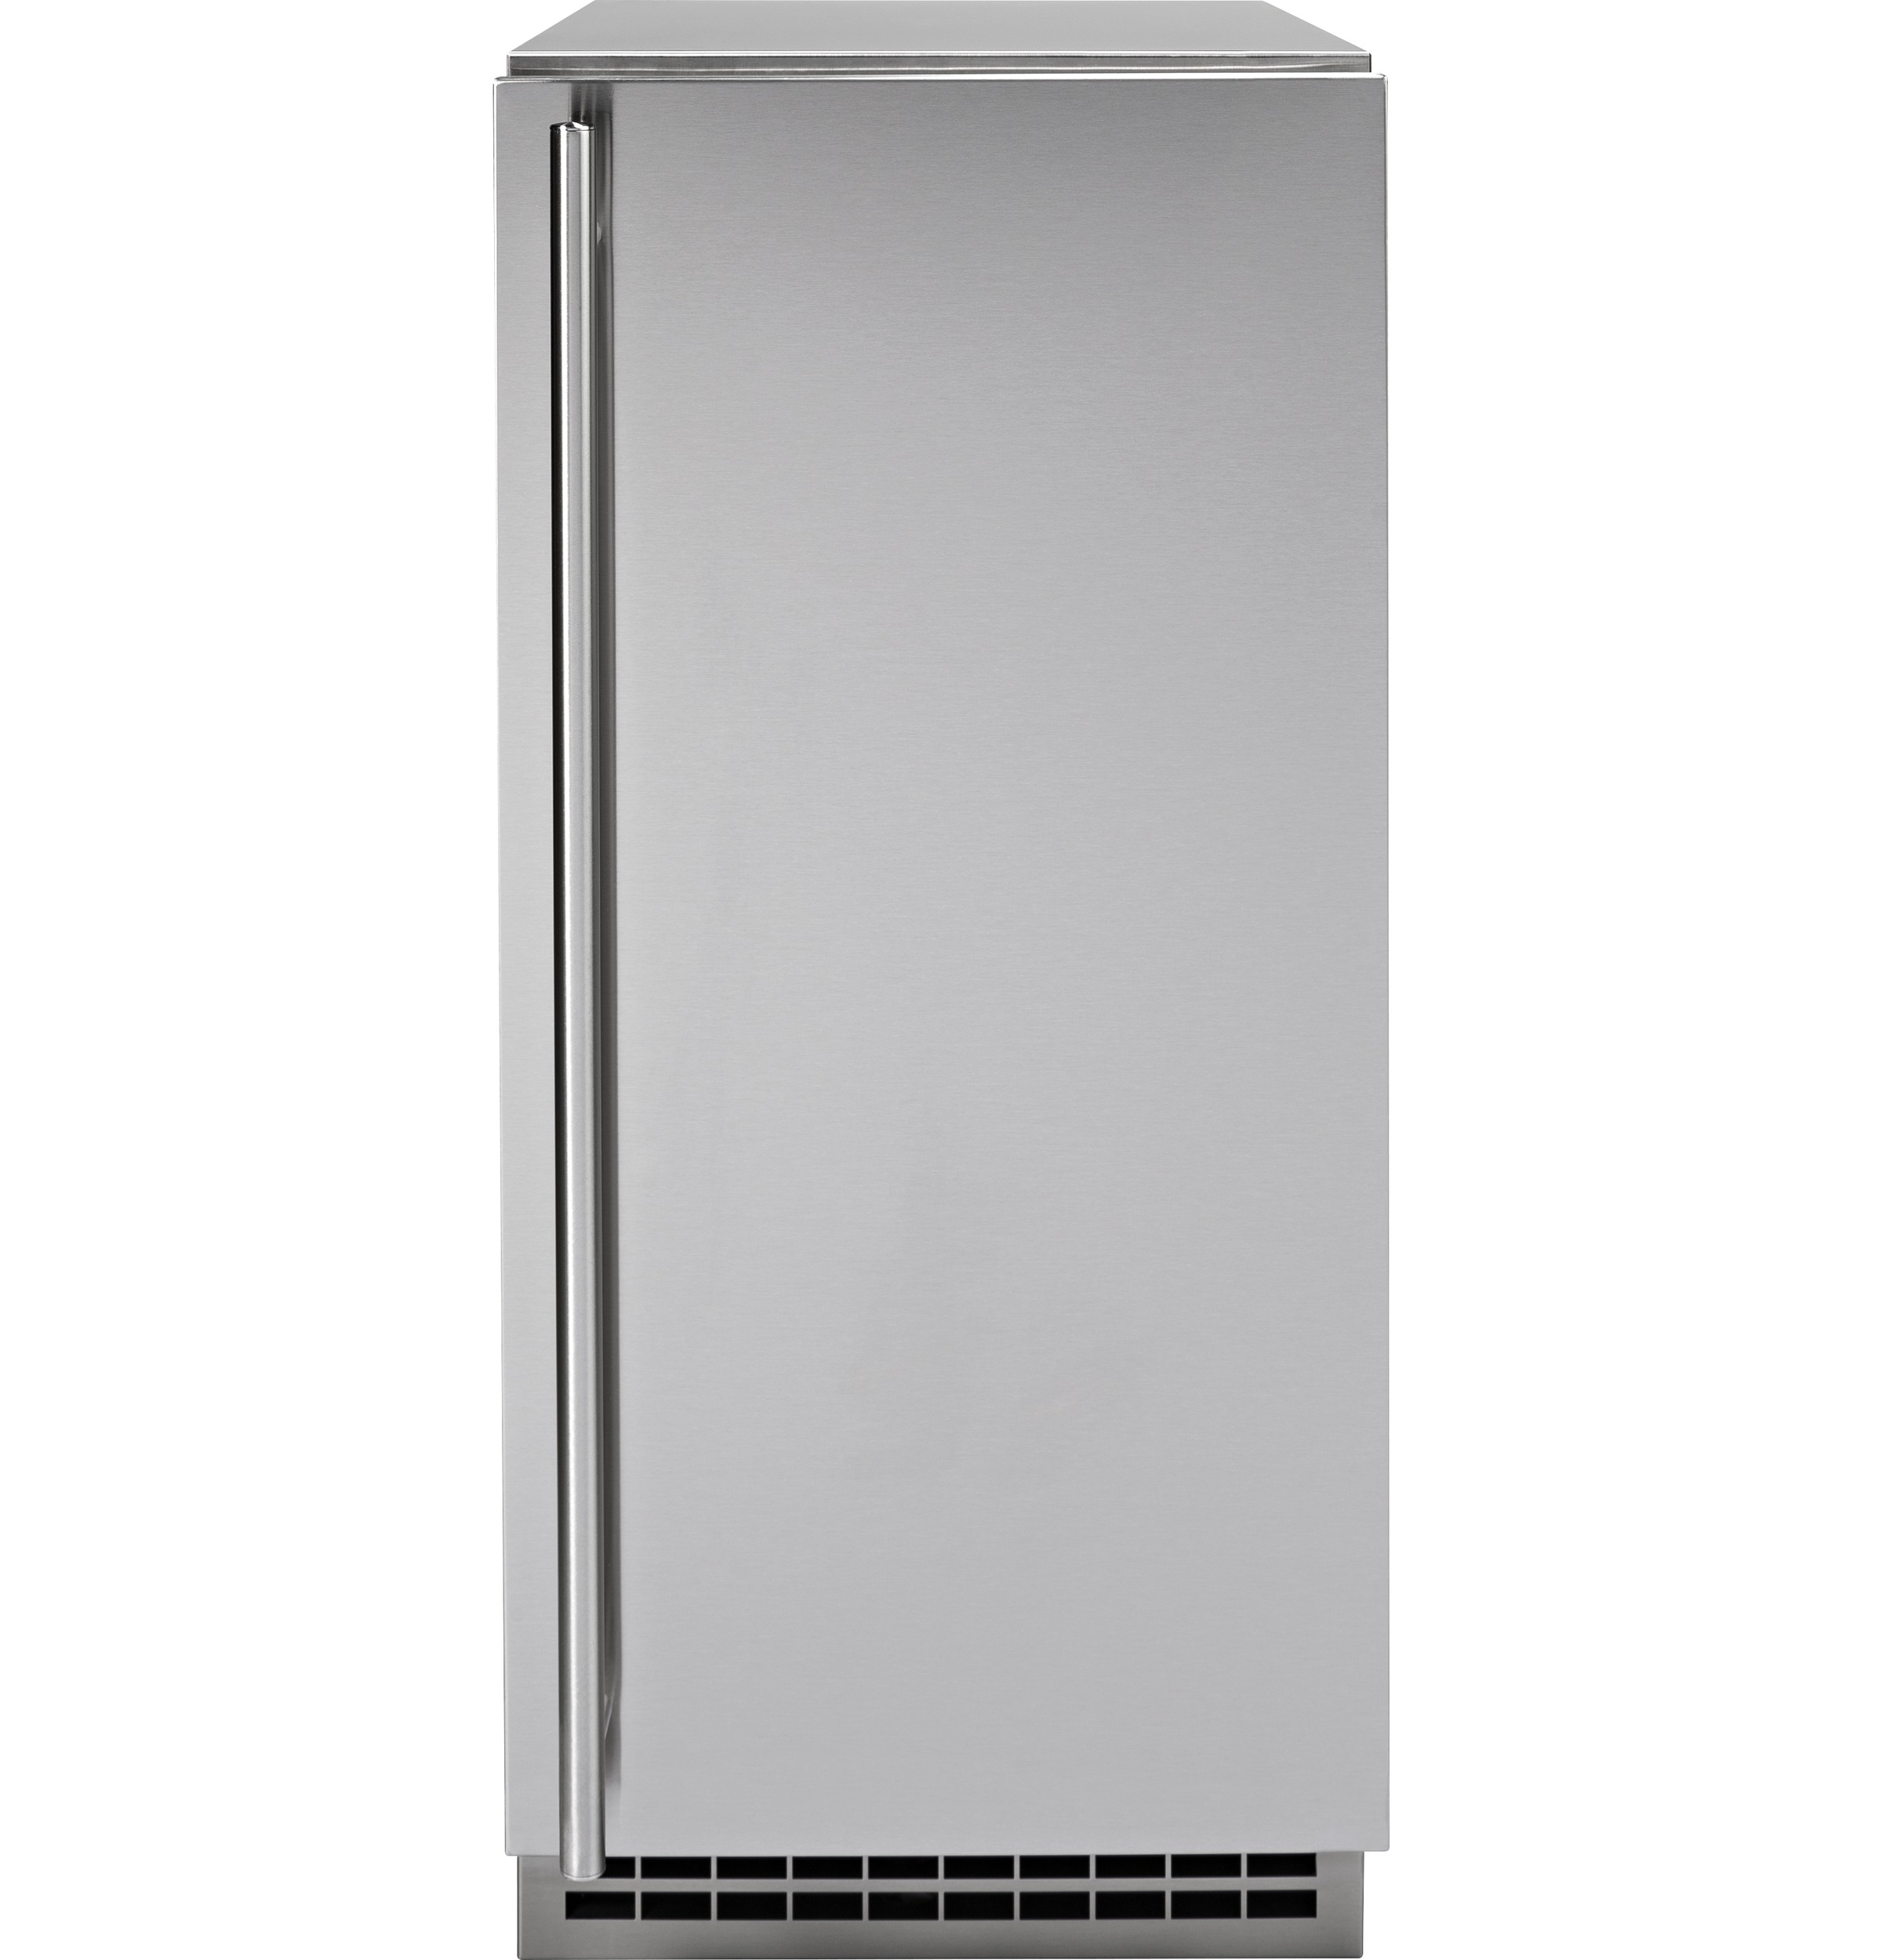 GE Profile Ice Maker 15-Inch - Nugget Ice